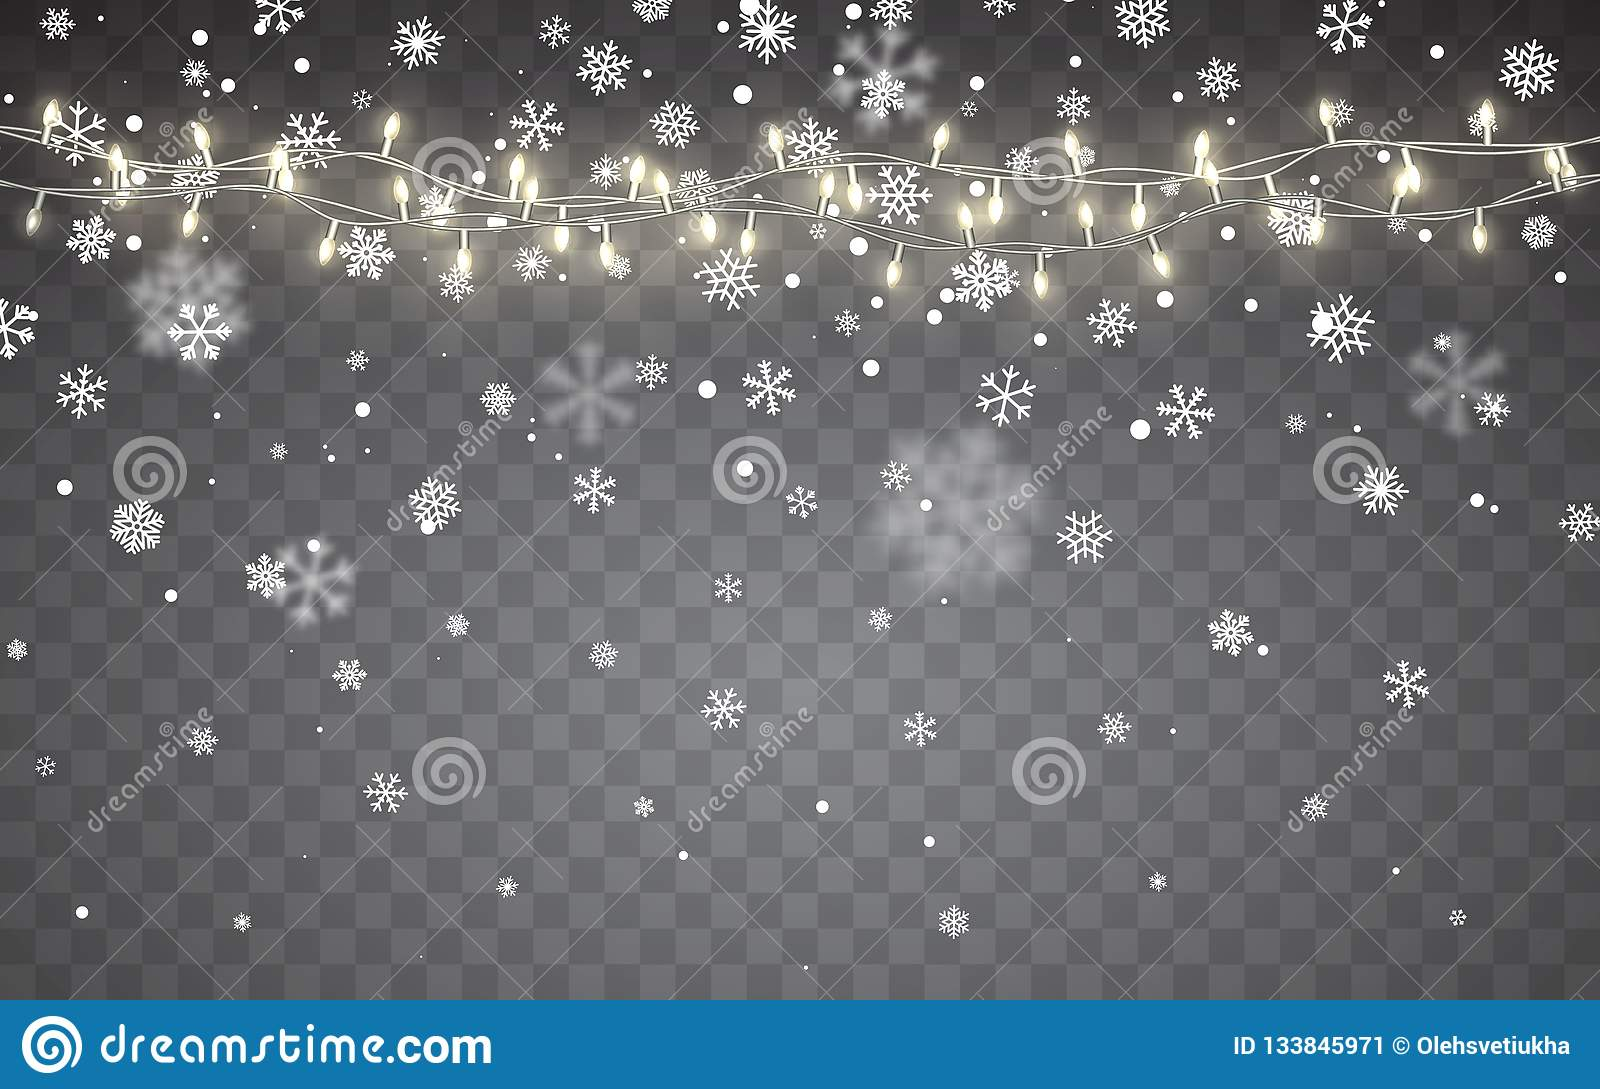 Christmas Lights That Look Like Water Falling.Christmas Snow Falling White Snowflakes On Dark Background